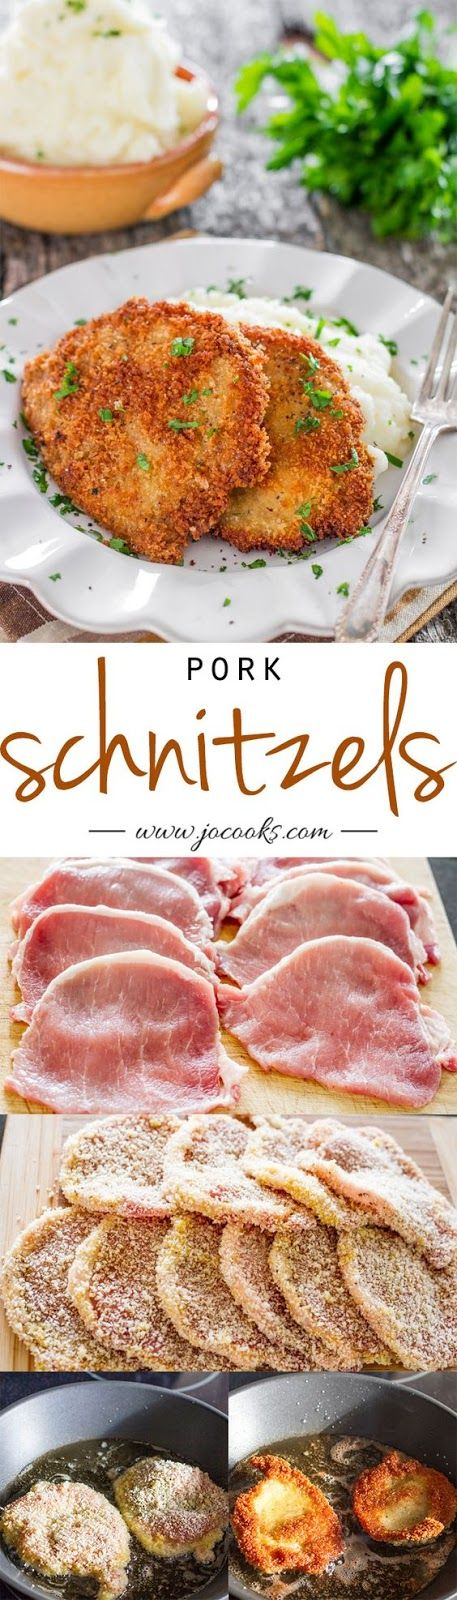 Pork Schnitzels   My German girlfriend taught me how to prepare these forty years ago.  This dish is always requested whenever family visits.  I do use Italian bread crumbs instead of Panko or regular.